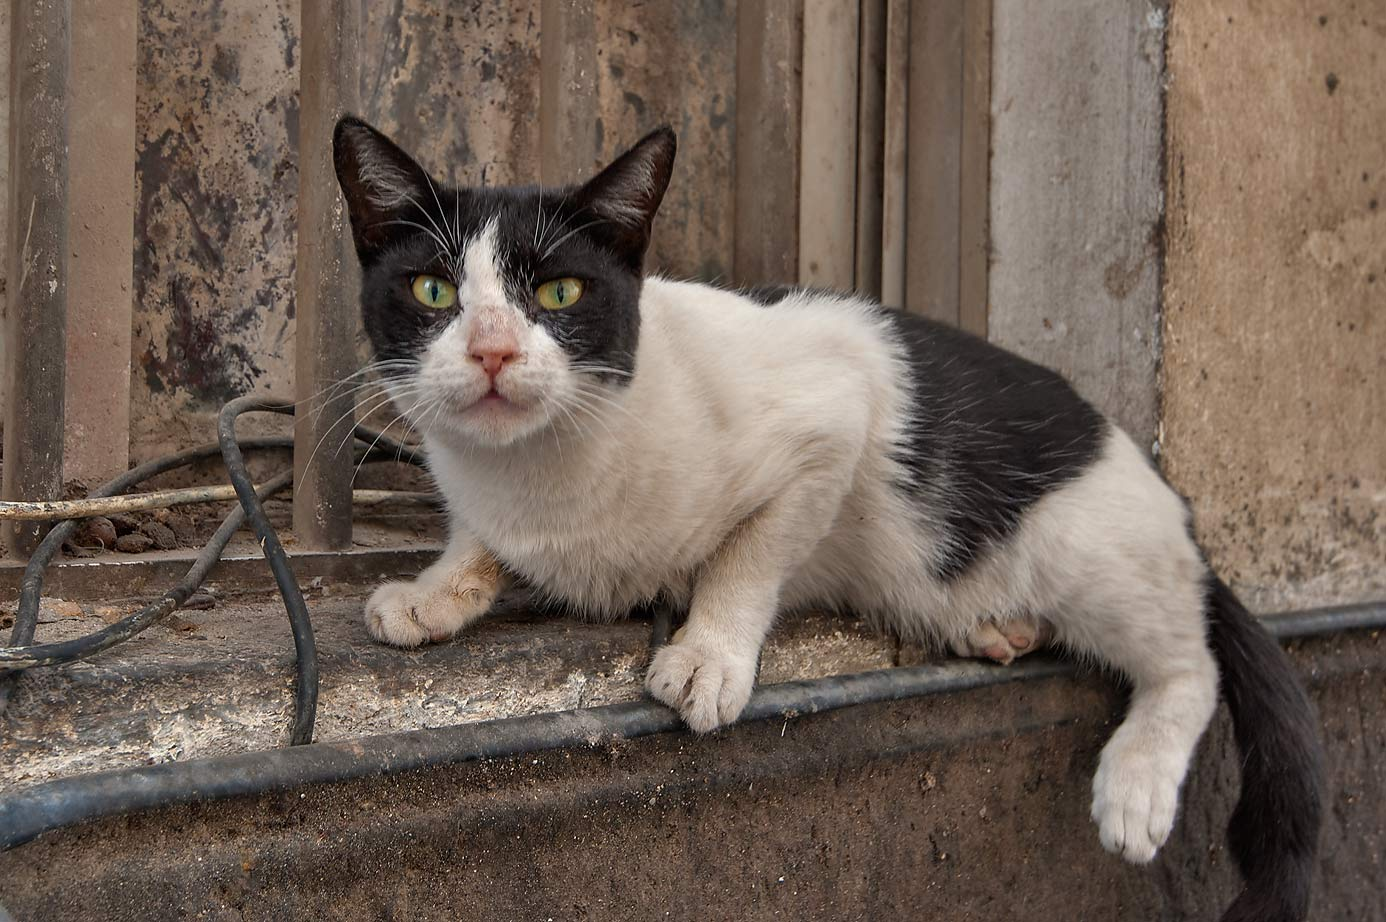 Frightened cat in Central Manama. Bahrain